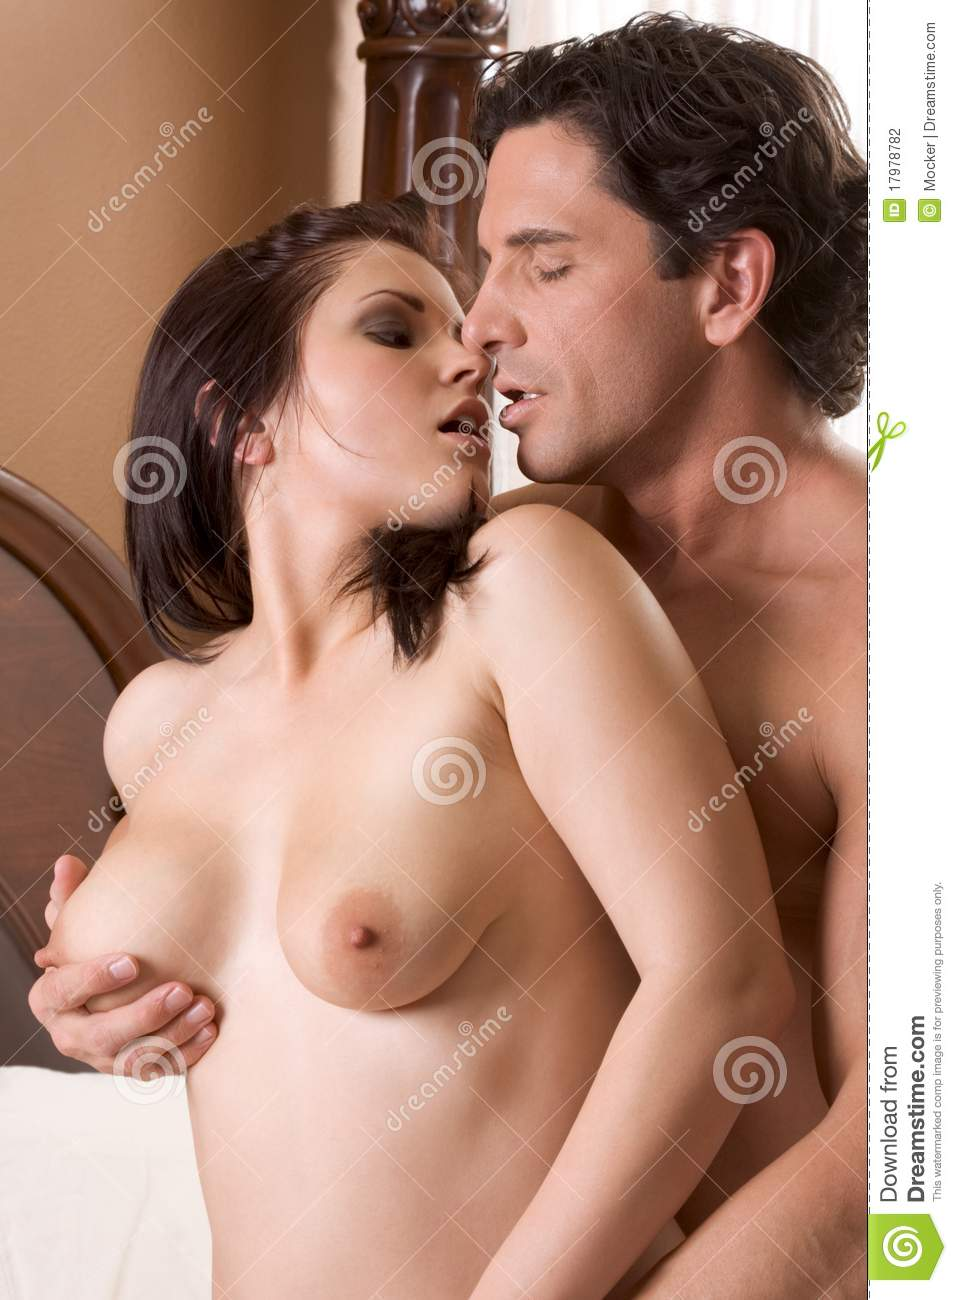 sexy couples pornographic photography